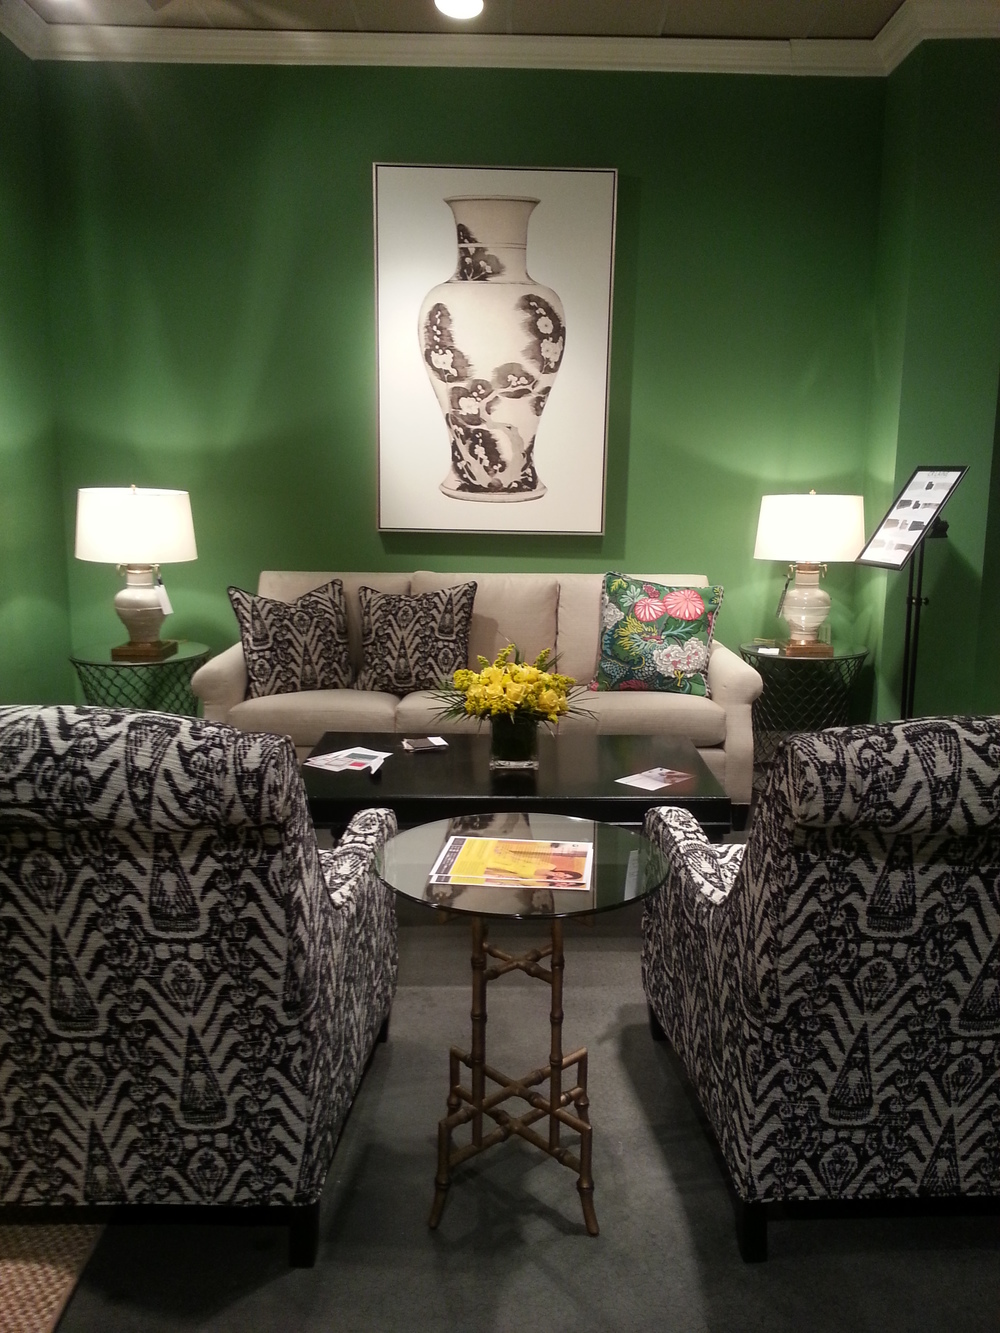 This Kelly Green color was so vibrant in the   CR Laine   showroom. I loved it paired with yellow, black and white and a few touches of gold.